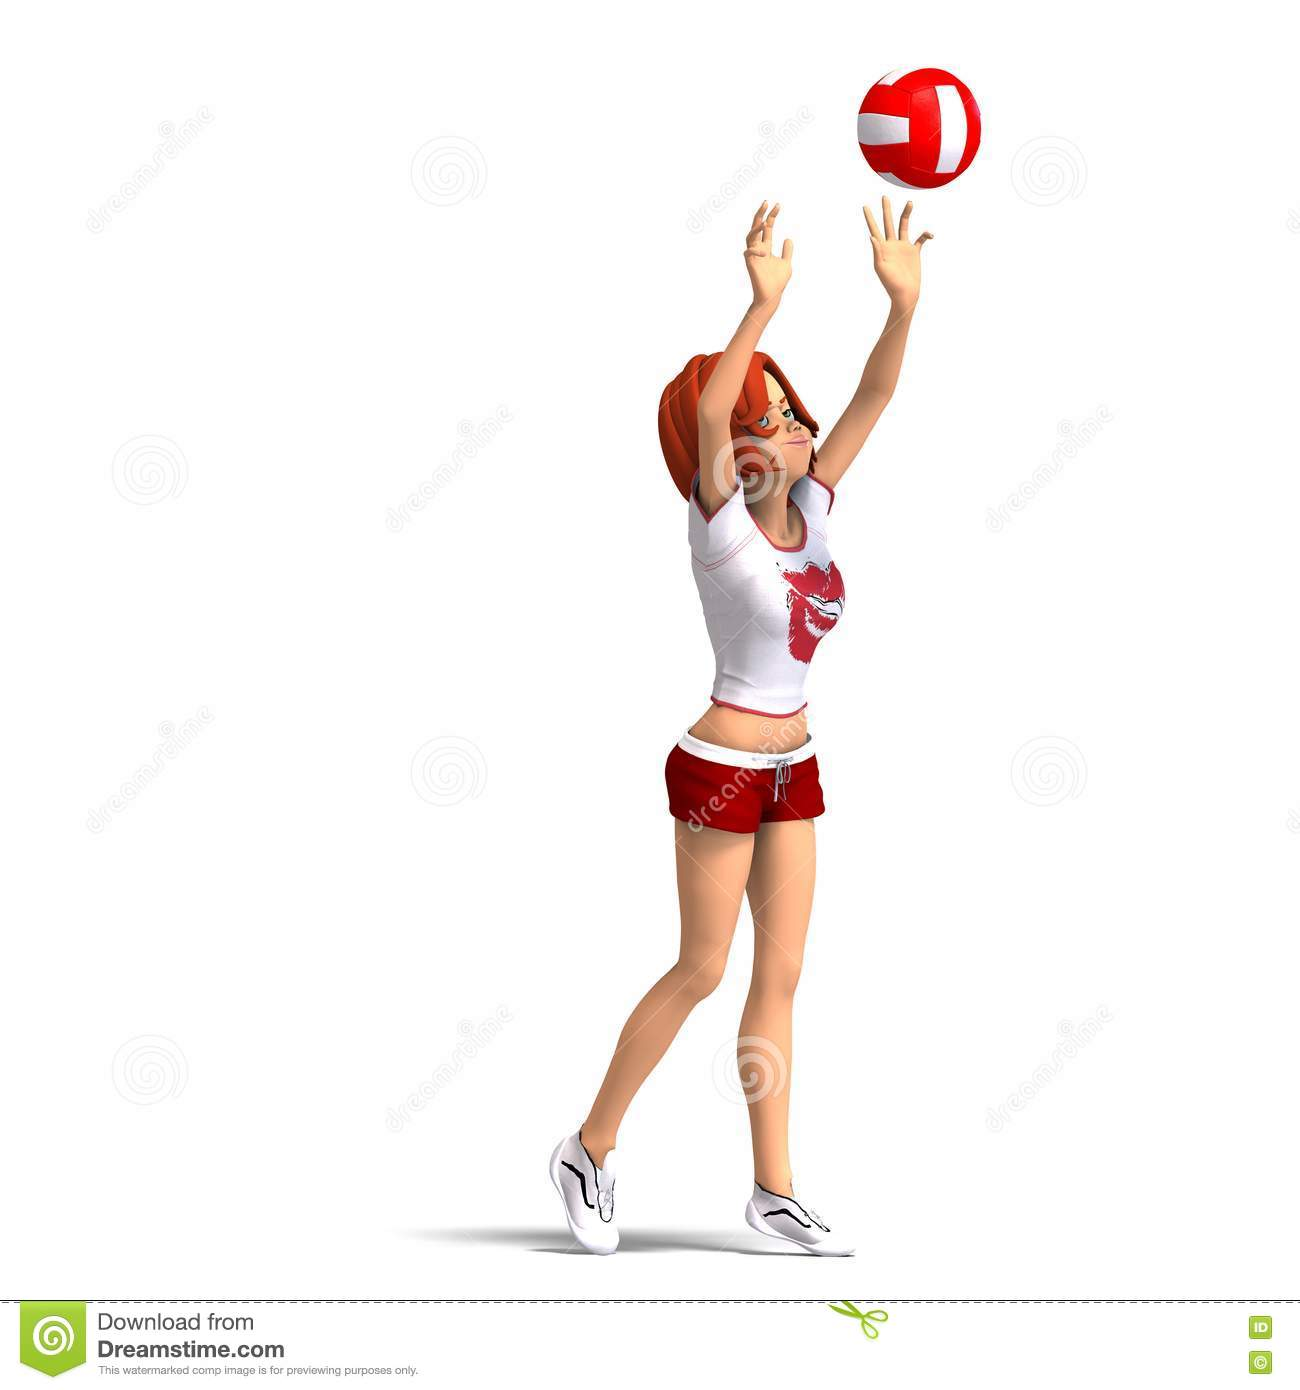 La fille joue au volleyball de toon images stock image - Fille joue au foot ...